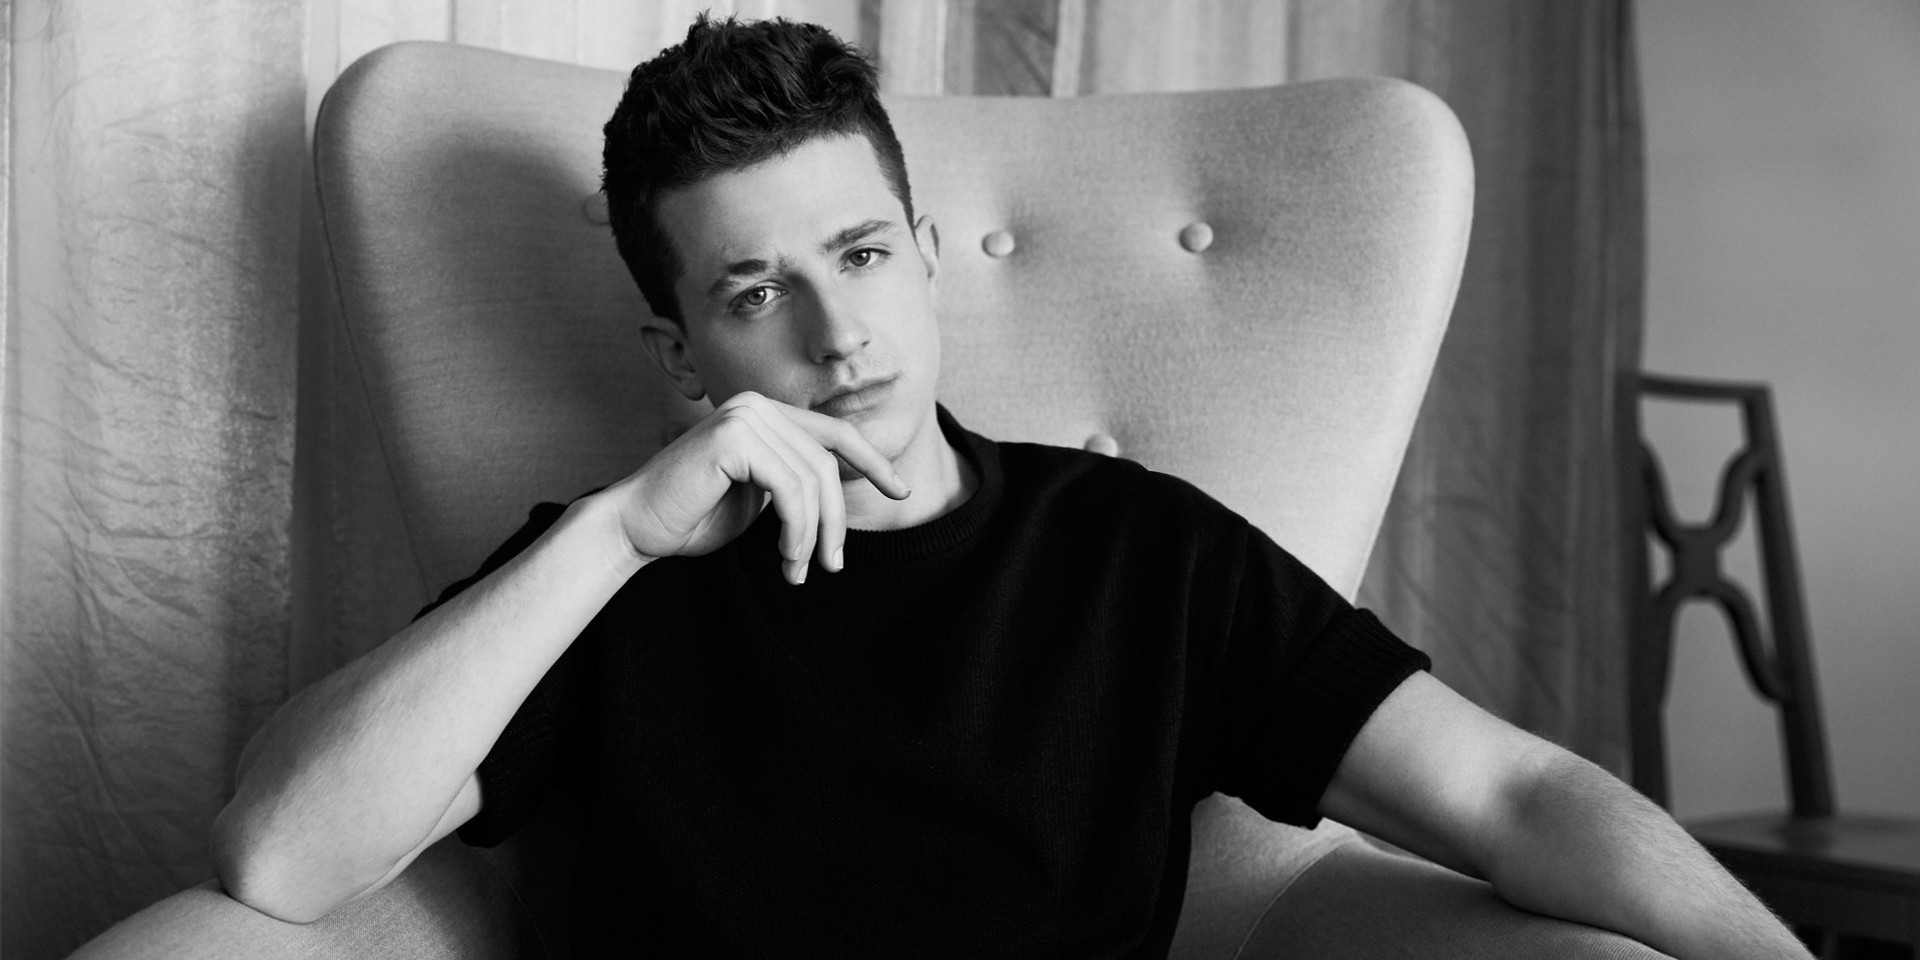 Charlie Puth's Manila concert has been canceled